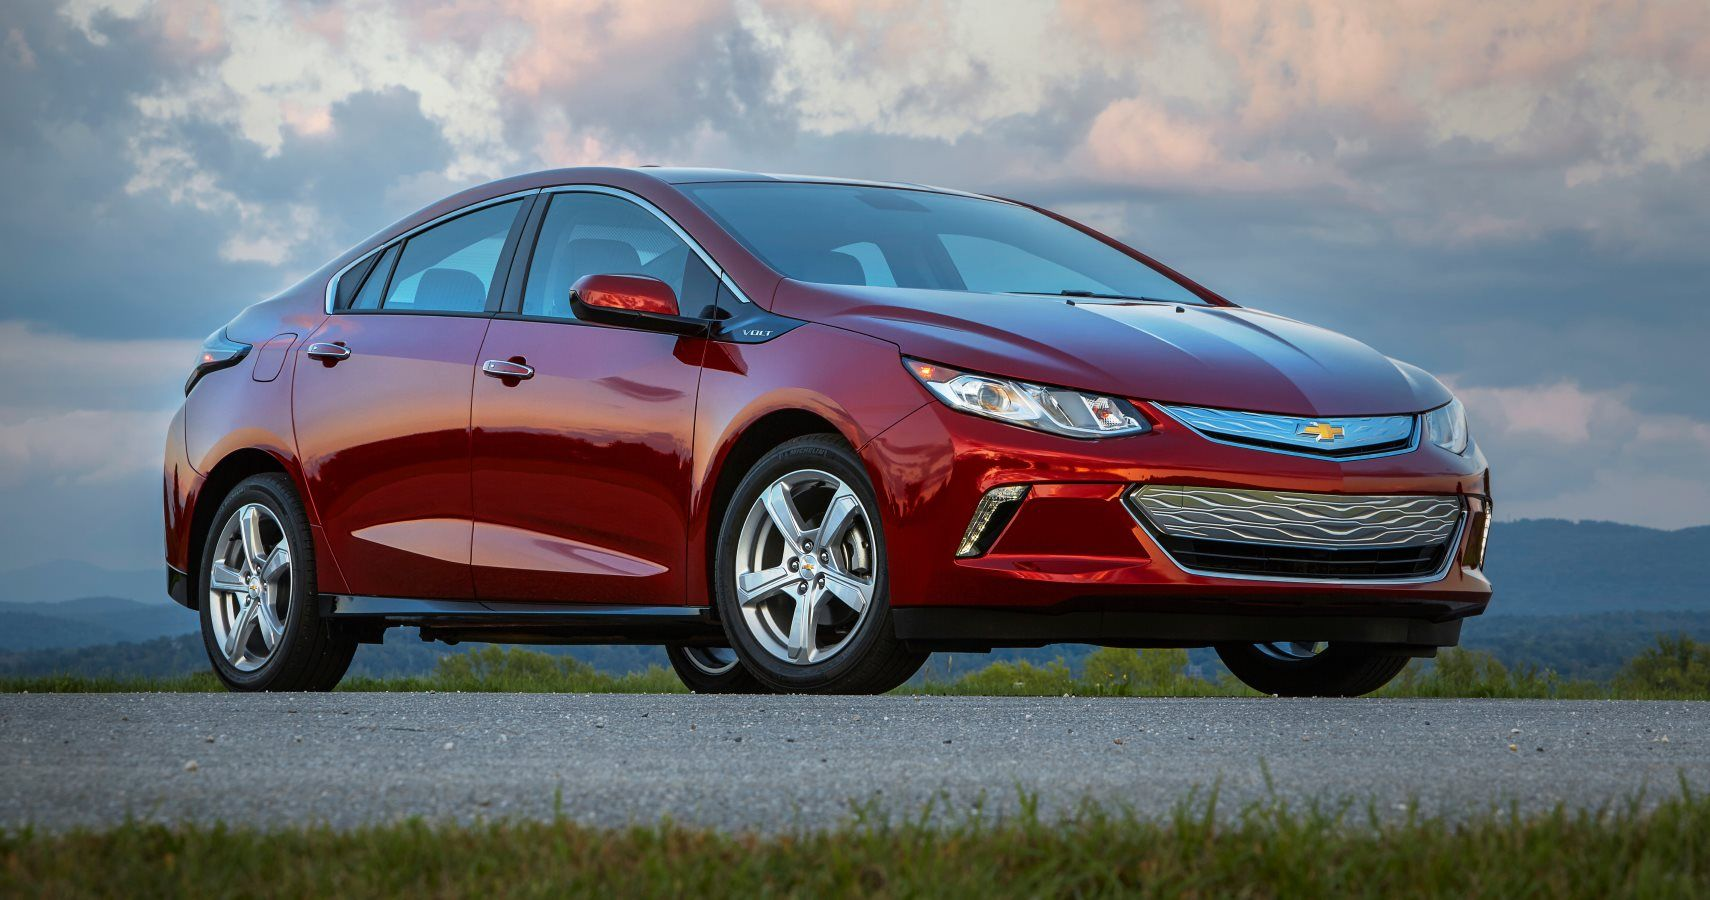 Gm President Says Plug In Hybrids Are Done Thinks Full Evs Are The Way